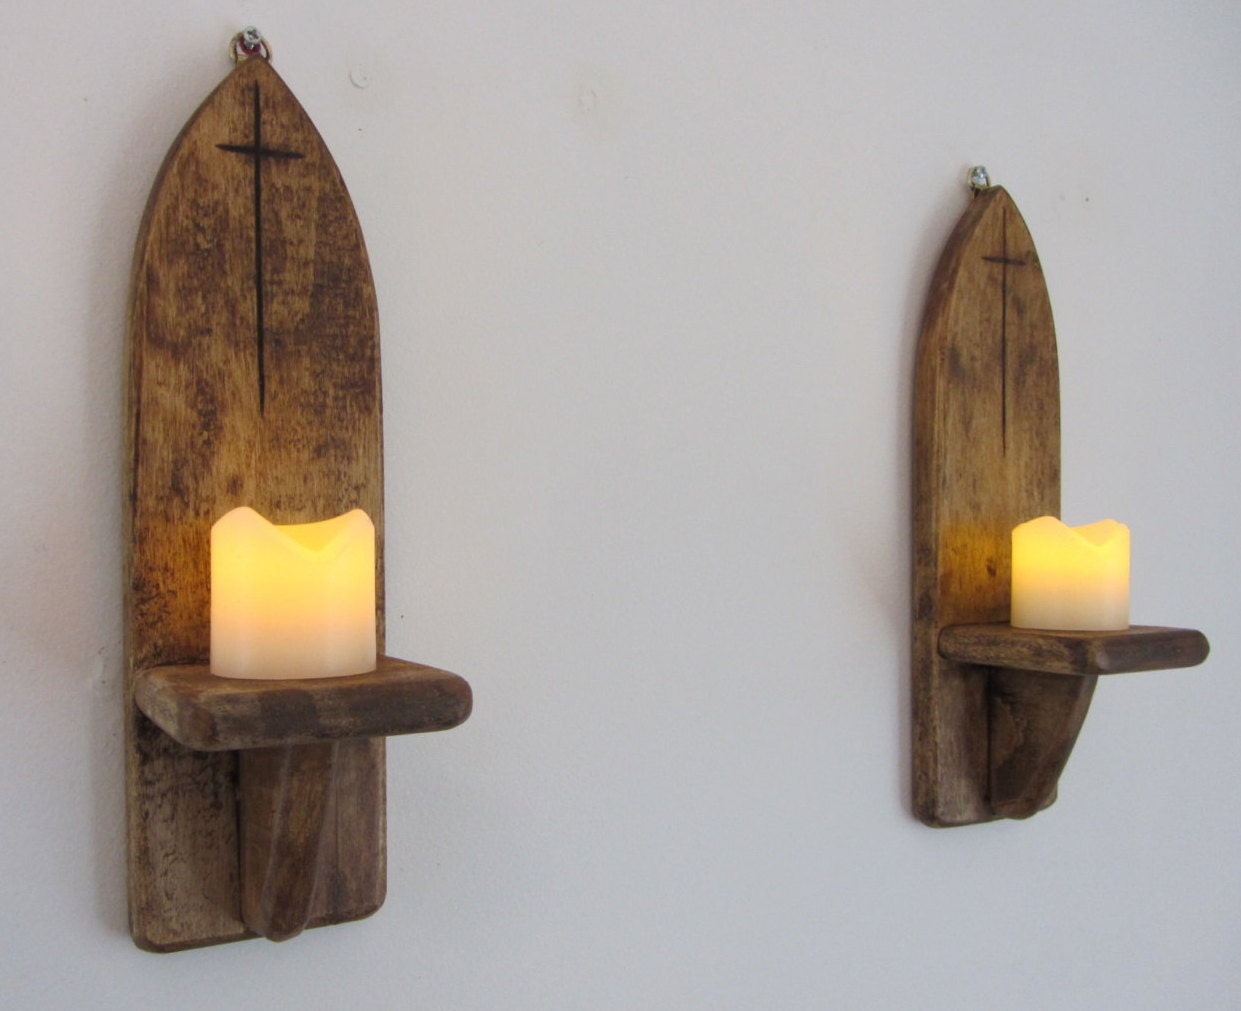 Pair of 30cm tall Gothic style wall sconce candle holders with